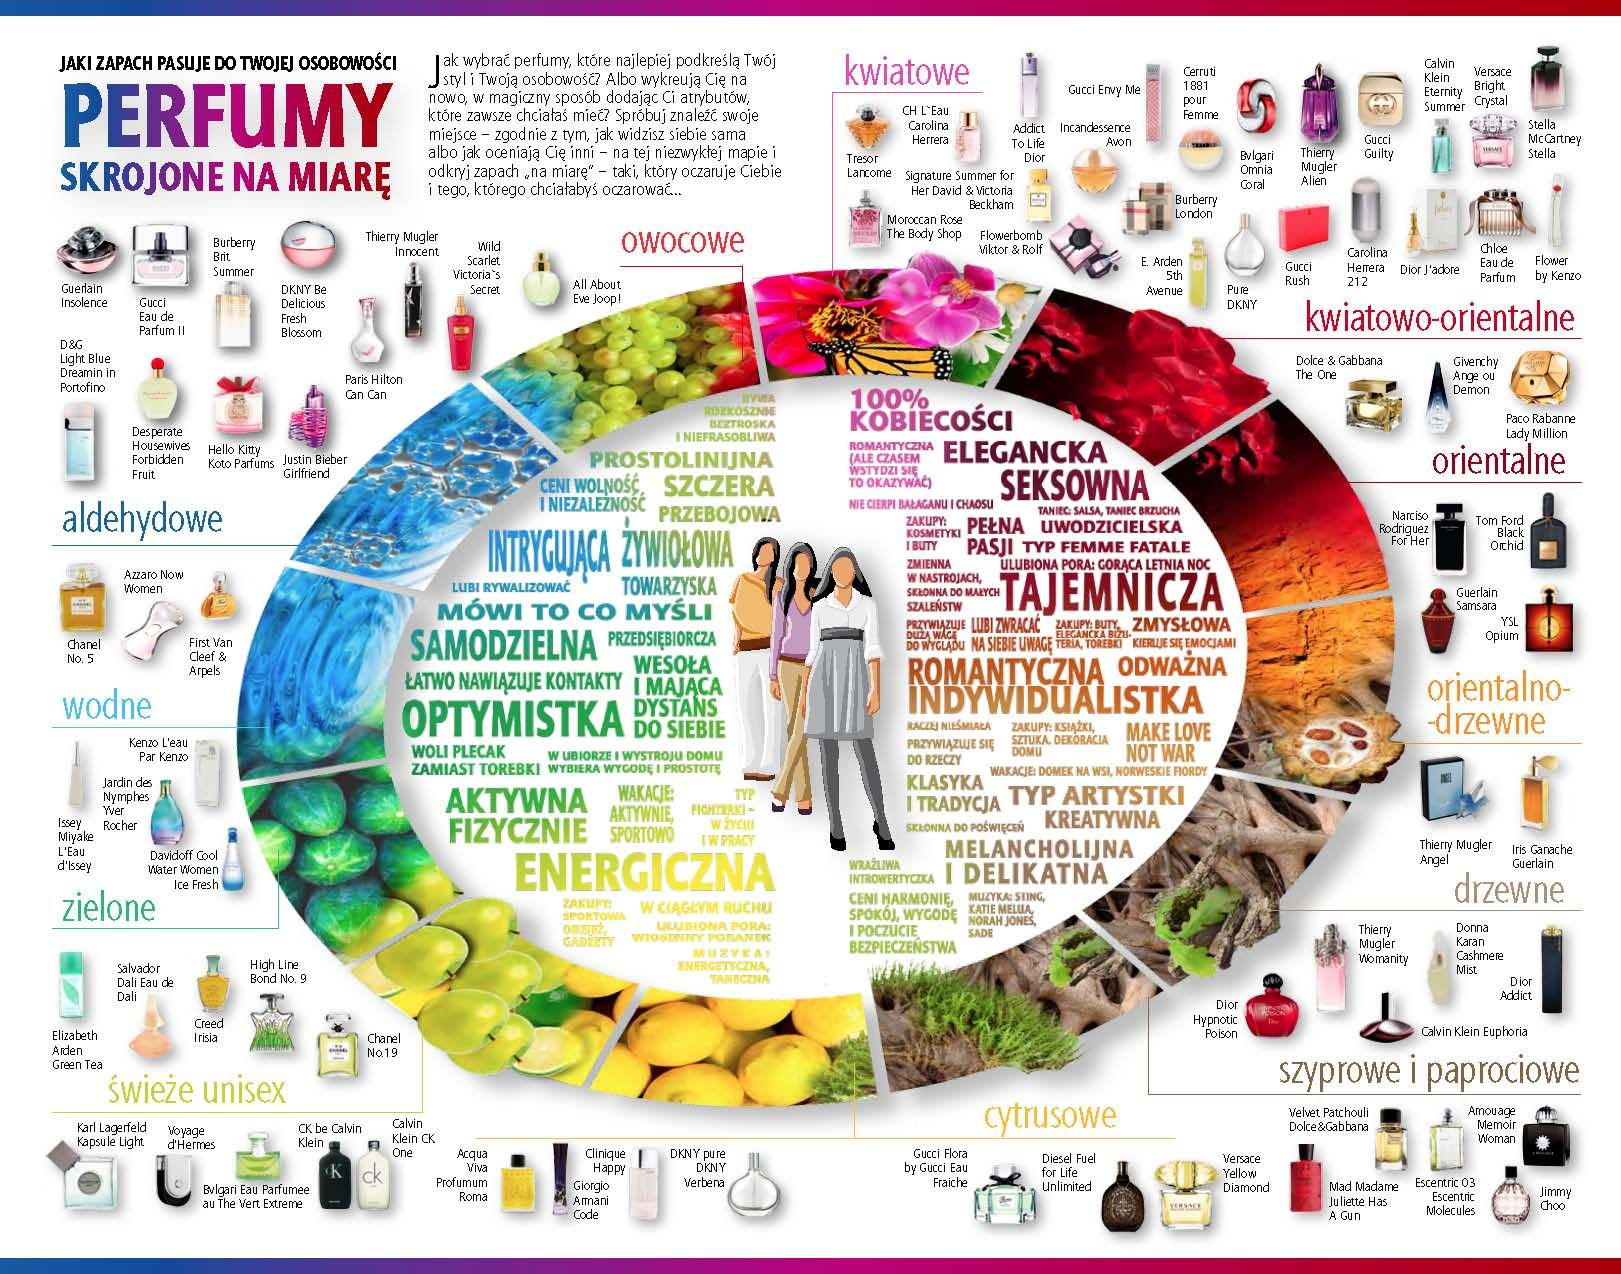 personality notes If you understand the qualities of individual fragrance notes, you will be able to find colognes that suit, more reliably, your personality.